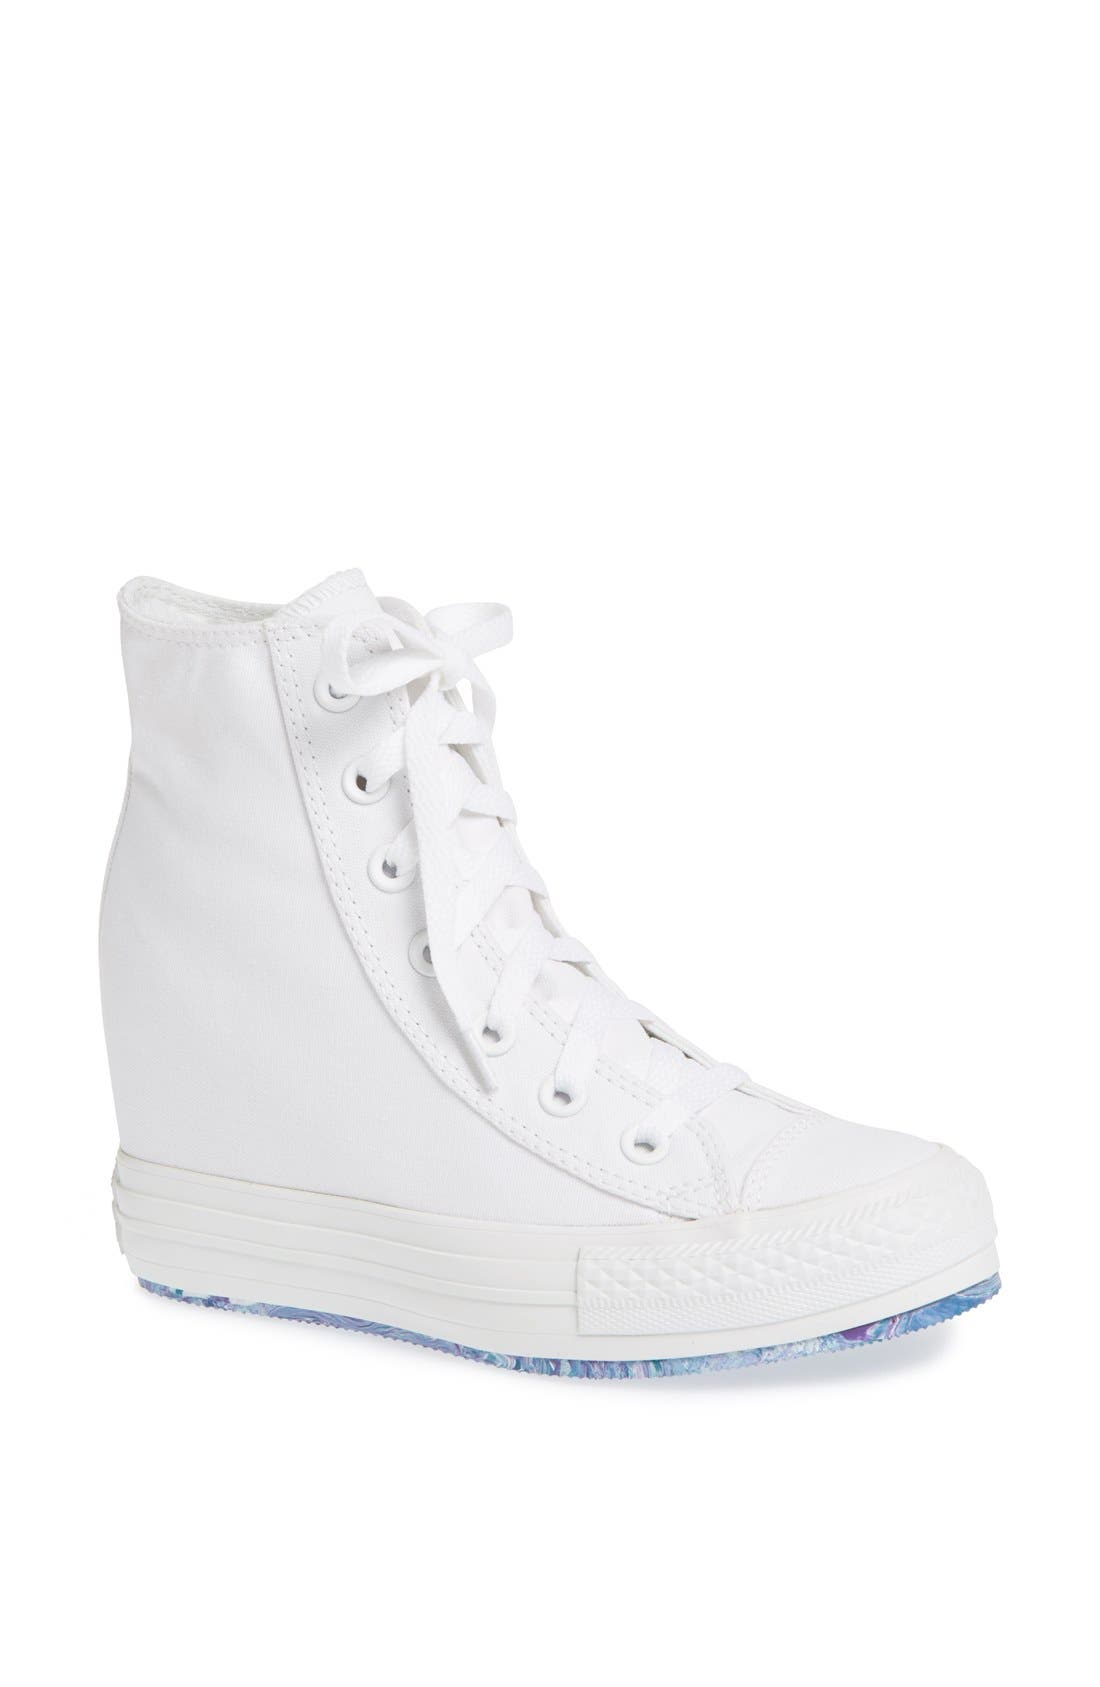 Chuck Taylor<sup>®</sup> All Star<sup>®</sup> 'Platform Plus' Hidden Wedge High-Top Sneaker,                             Main thumbnail 1, color,                             100